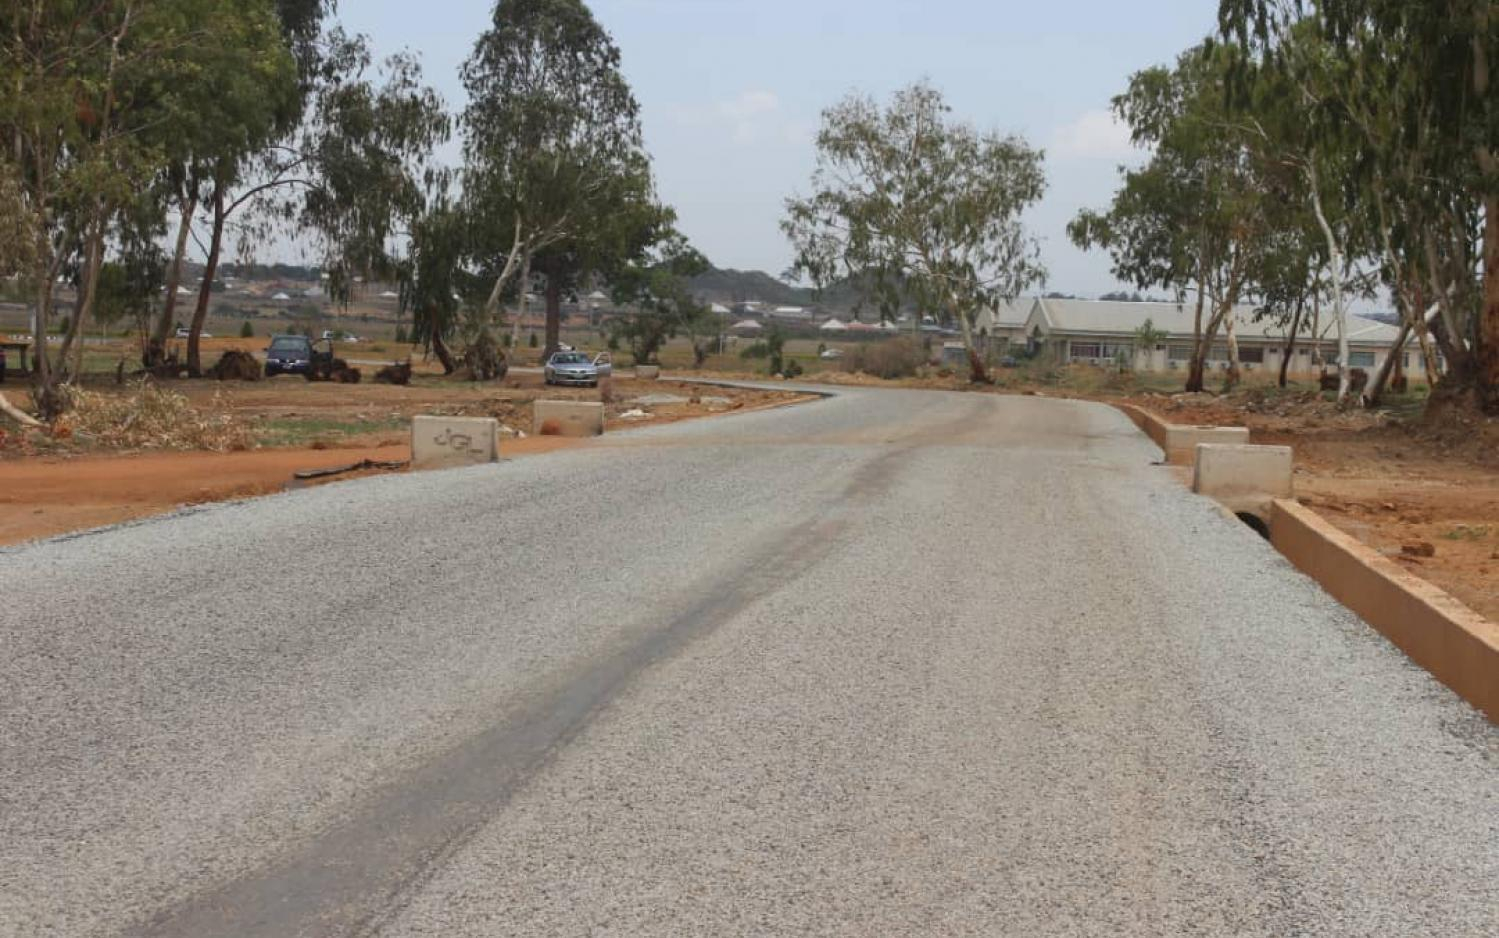 Maimako Administration Delivers More Projects